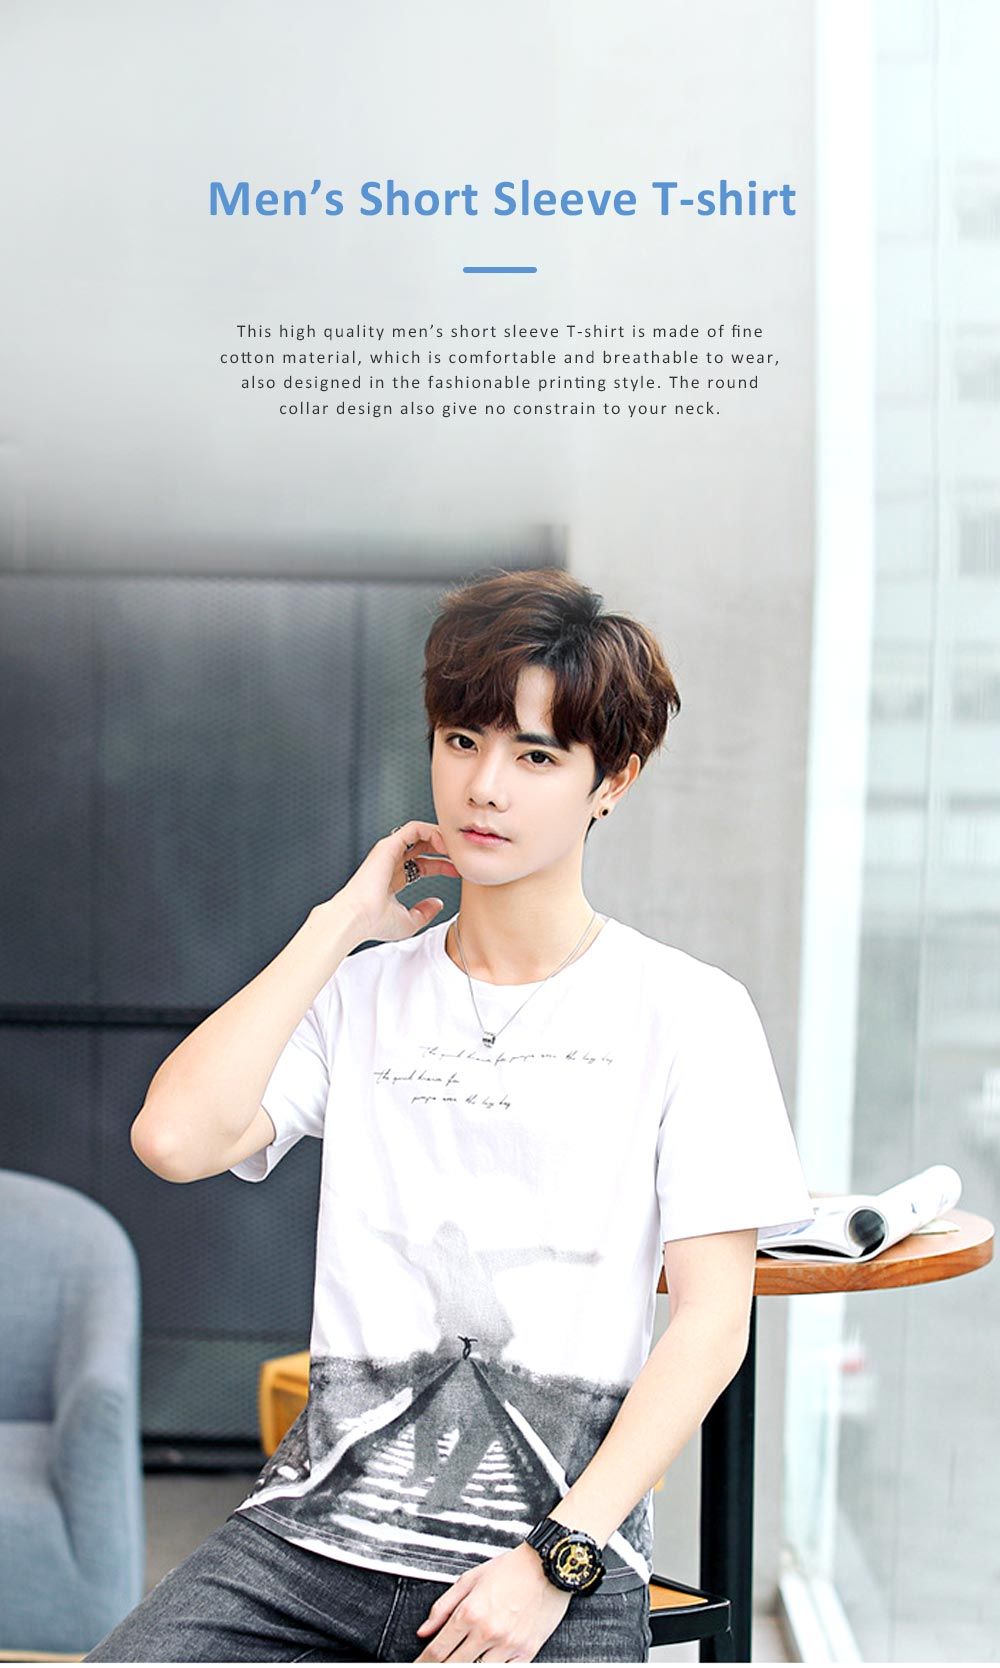 2019 New Style Casual Men's Short Sleeve T-shirt with Round Collar, Fashionable and Durable Cotton Material Top 0